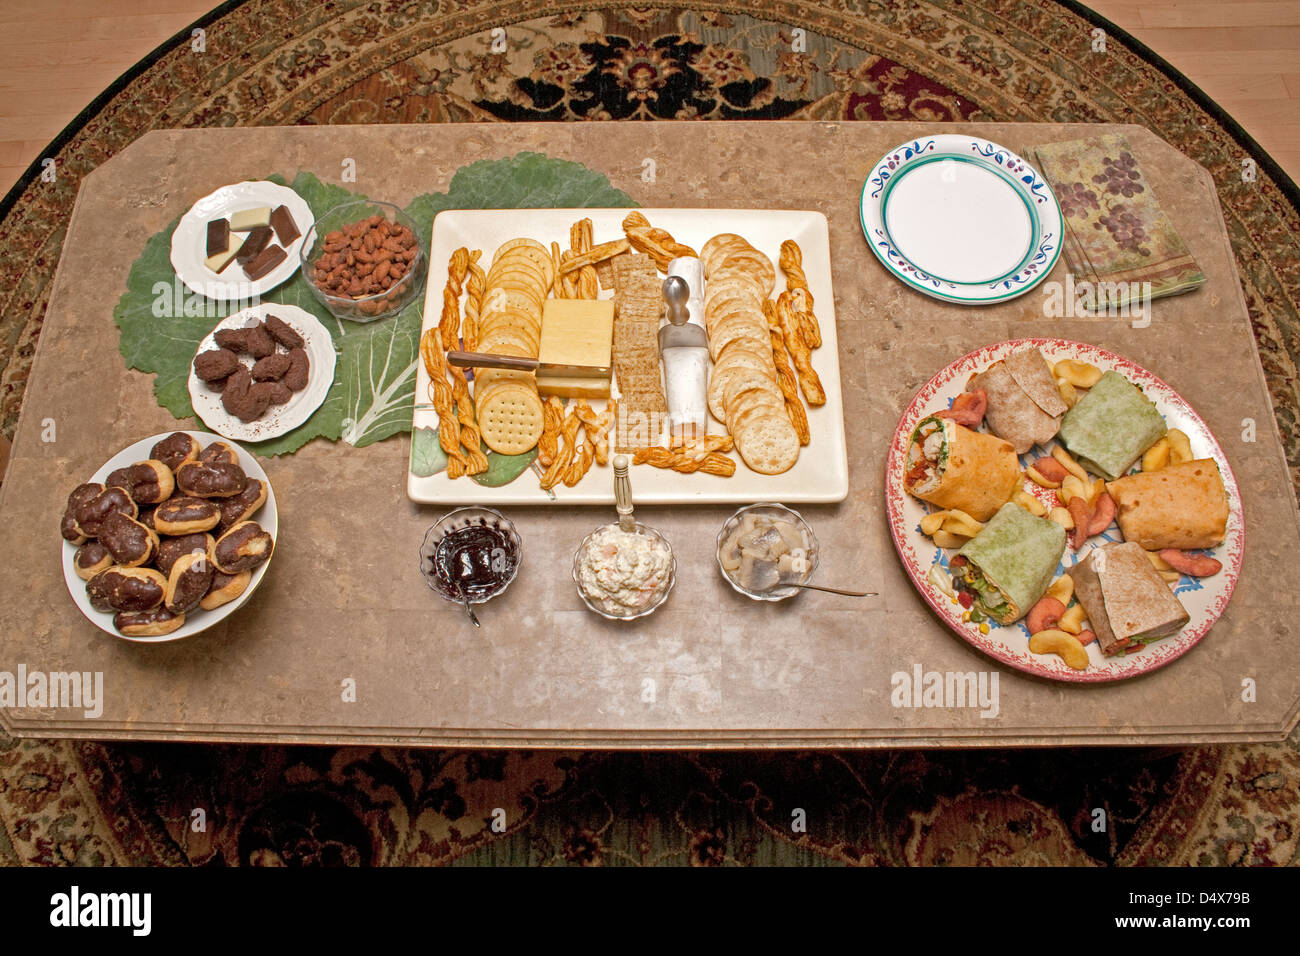 Table of eclairs, sandwich rolls, candy, cheese, crackers and herring snacks and appetizers. St Paul Minnesota MN - Stock Image